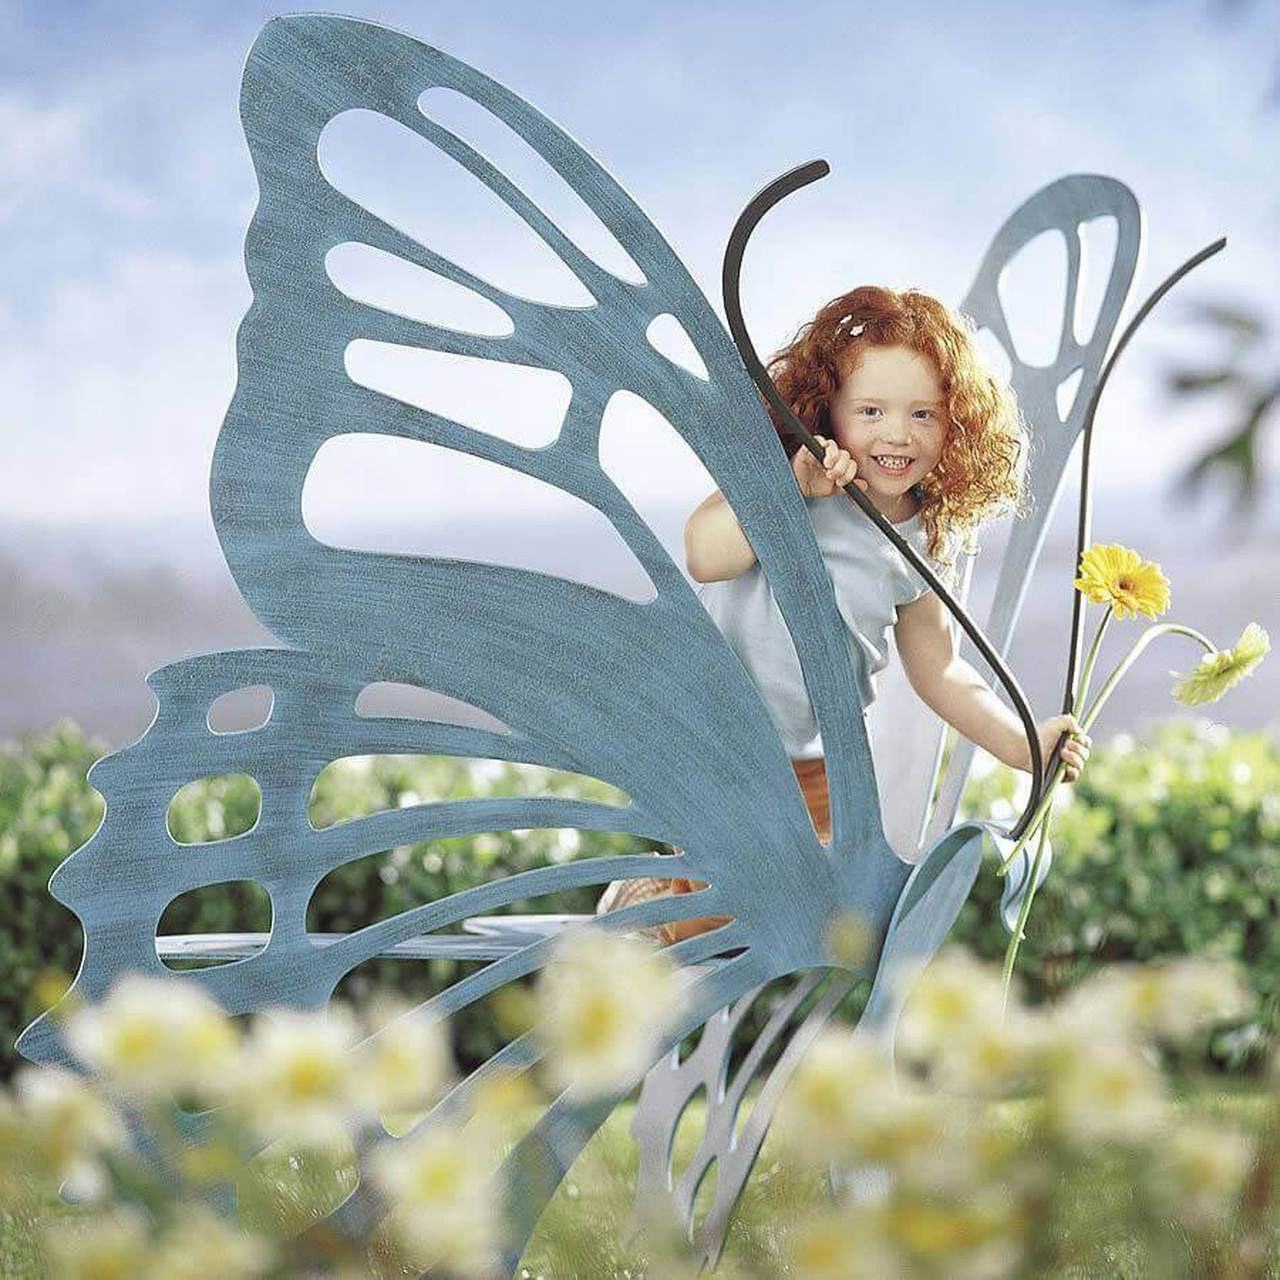 Cricket Forge Butterfly Bench & Tables | Outdoor Metal Pertaining To Caryn Colored Butterflies Metal Garden Benches (View 18 of 25)